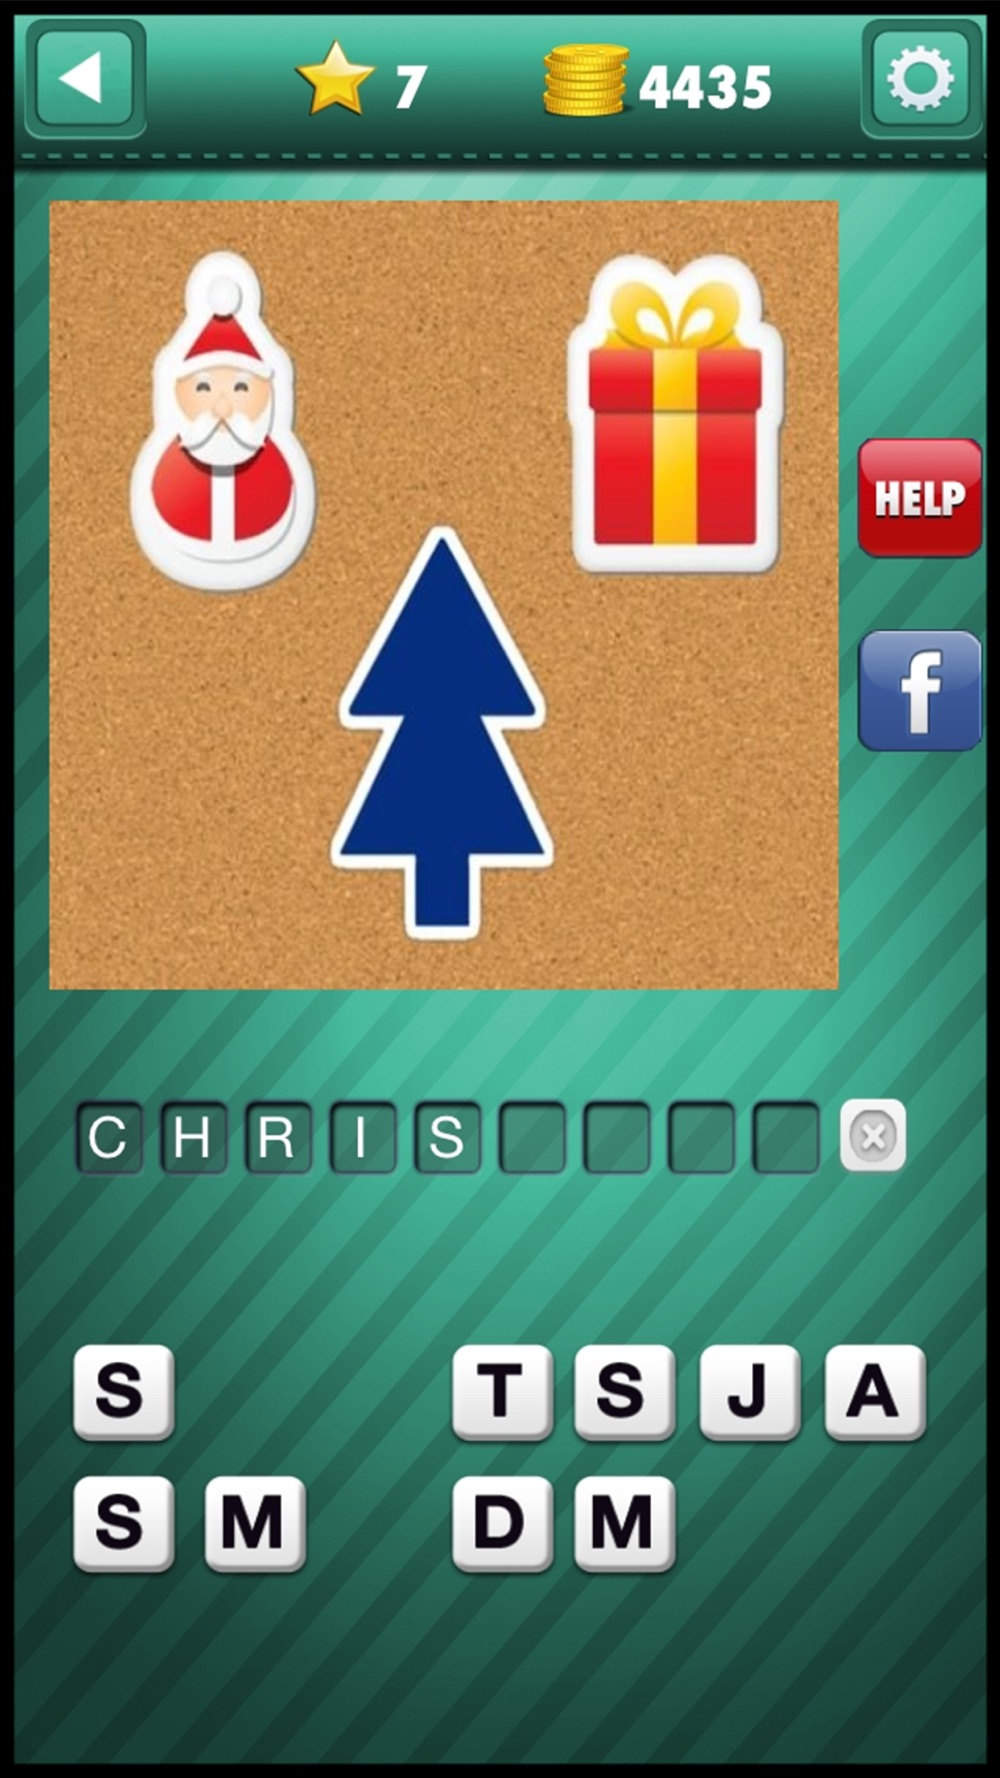 Hack tool for Emoji Guess & Letter Up Icon Pic - find what's the word in this guessing trivia crack pop quiz